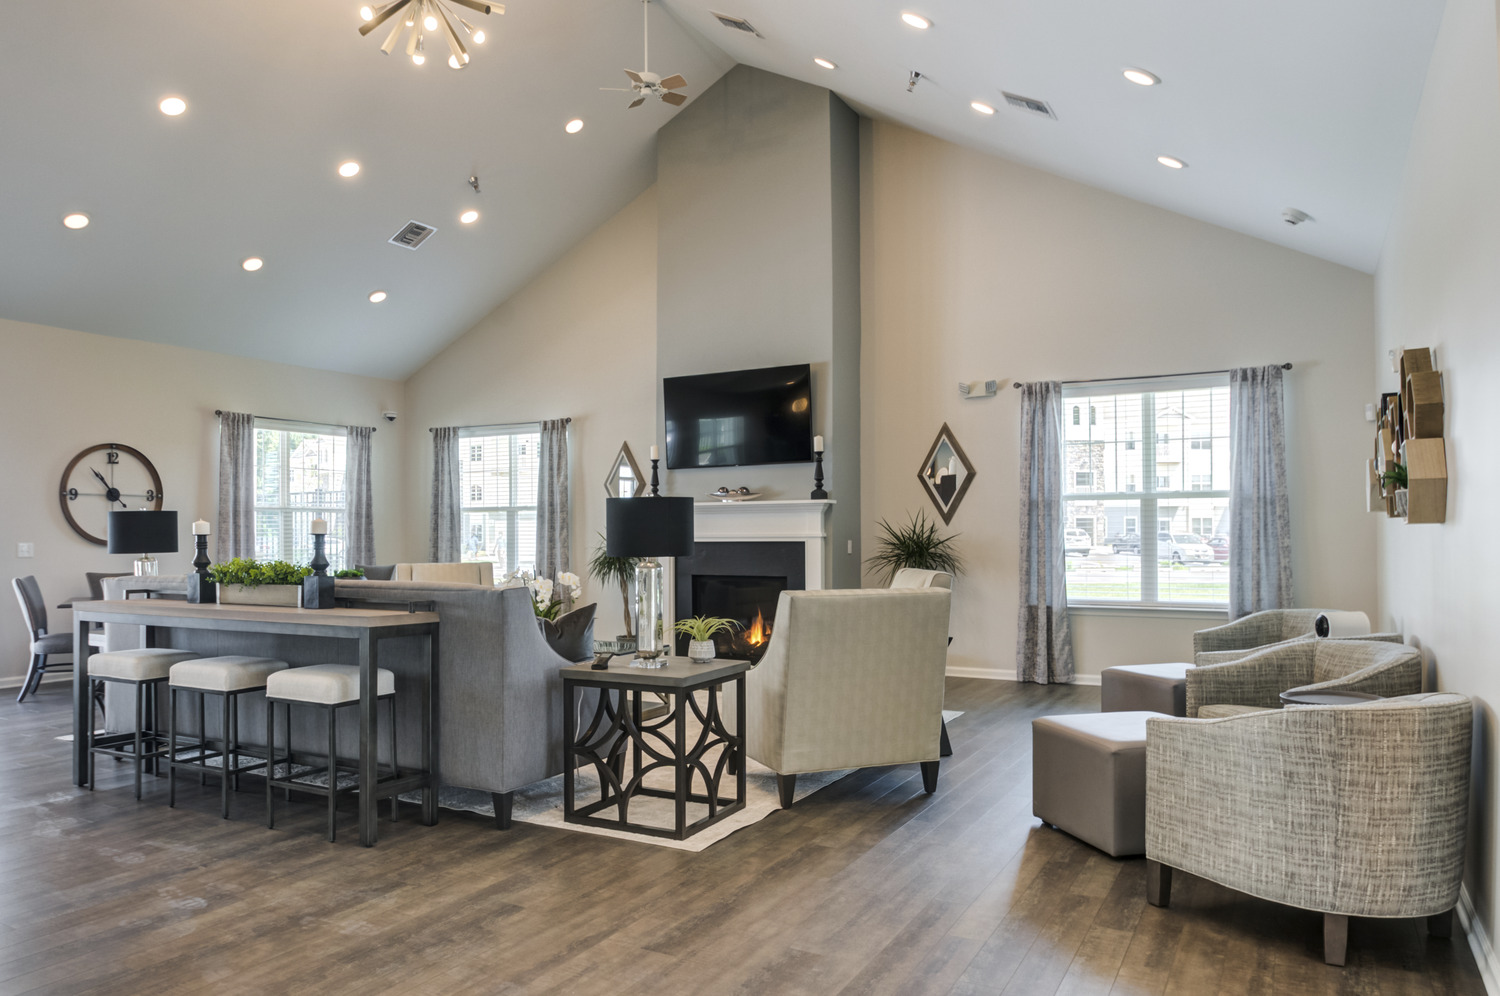 CBG builds Coventry Square, a Multi-Building Garden-Style Community with Amenities in Salisbury, MD - Image #3